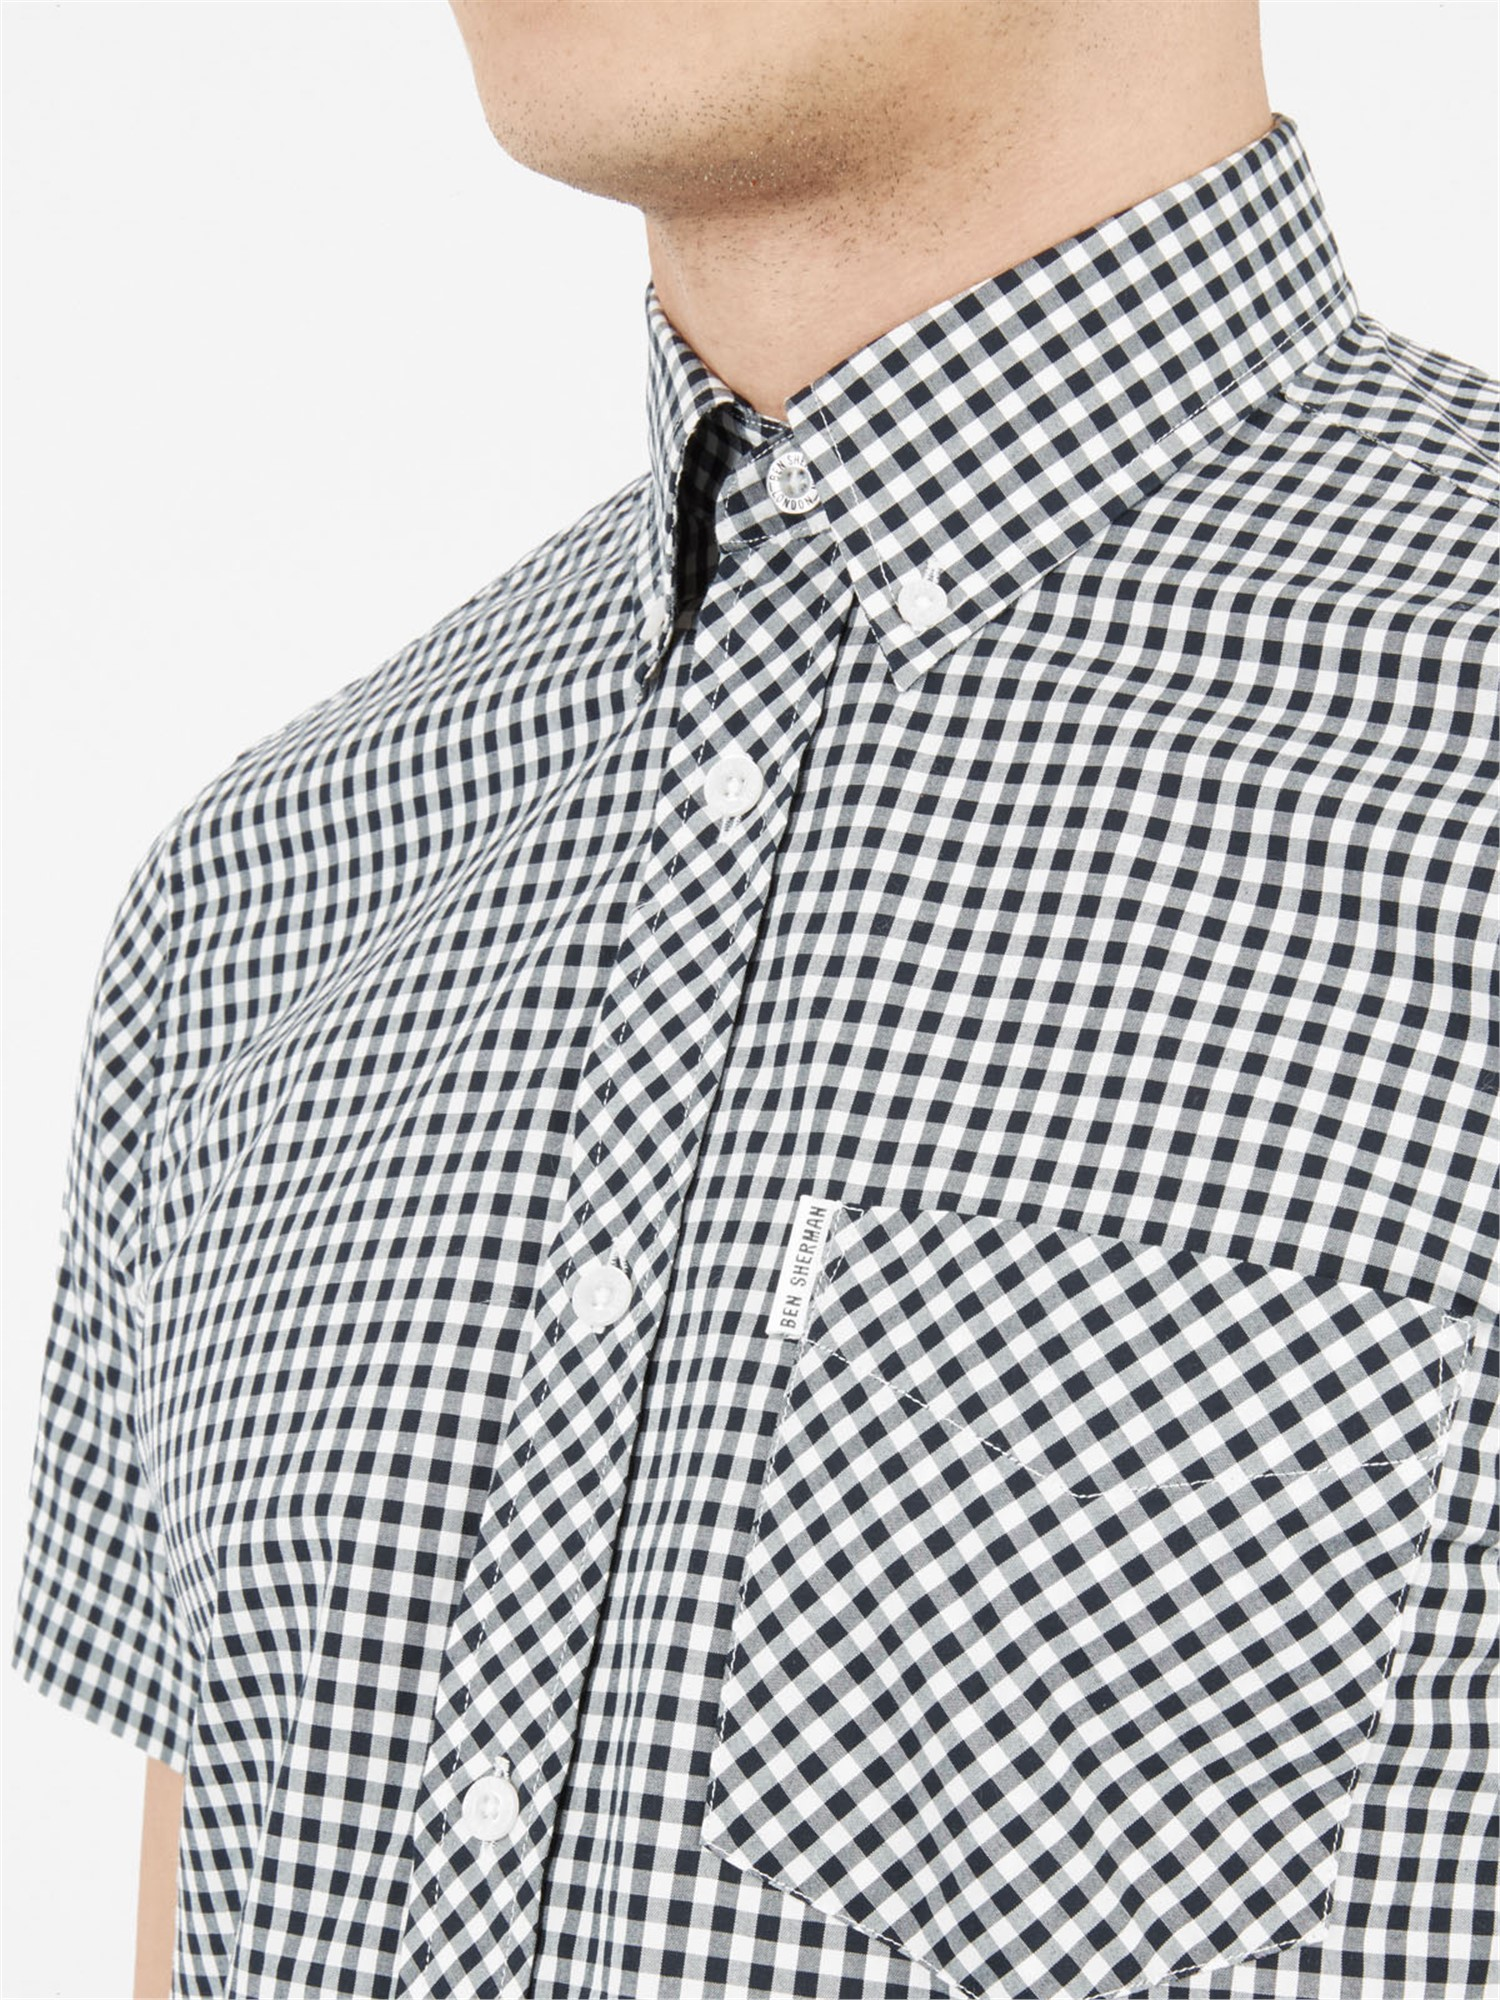 Original Gingham Check Short Sleeve Shirt